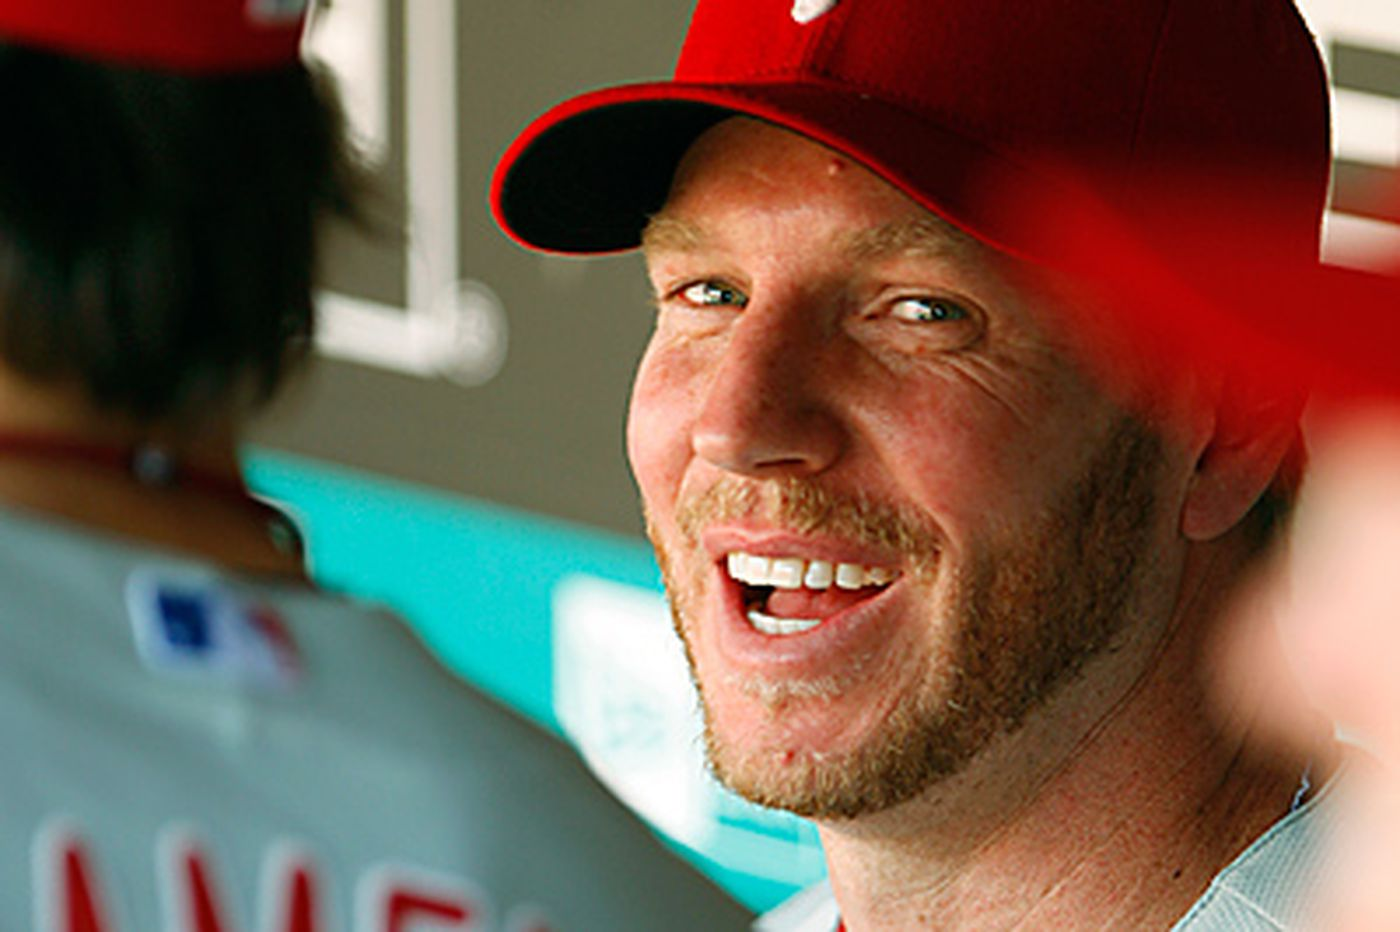 Roy-al treatment for Halladay in return after perfect game?